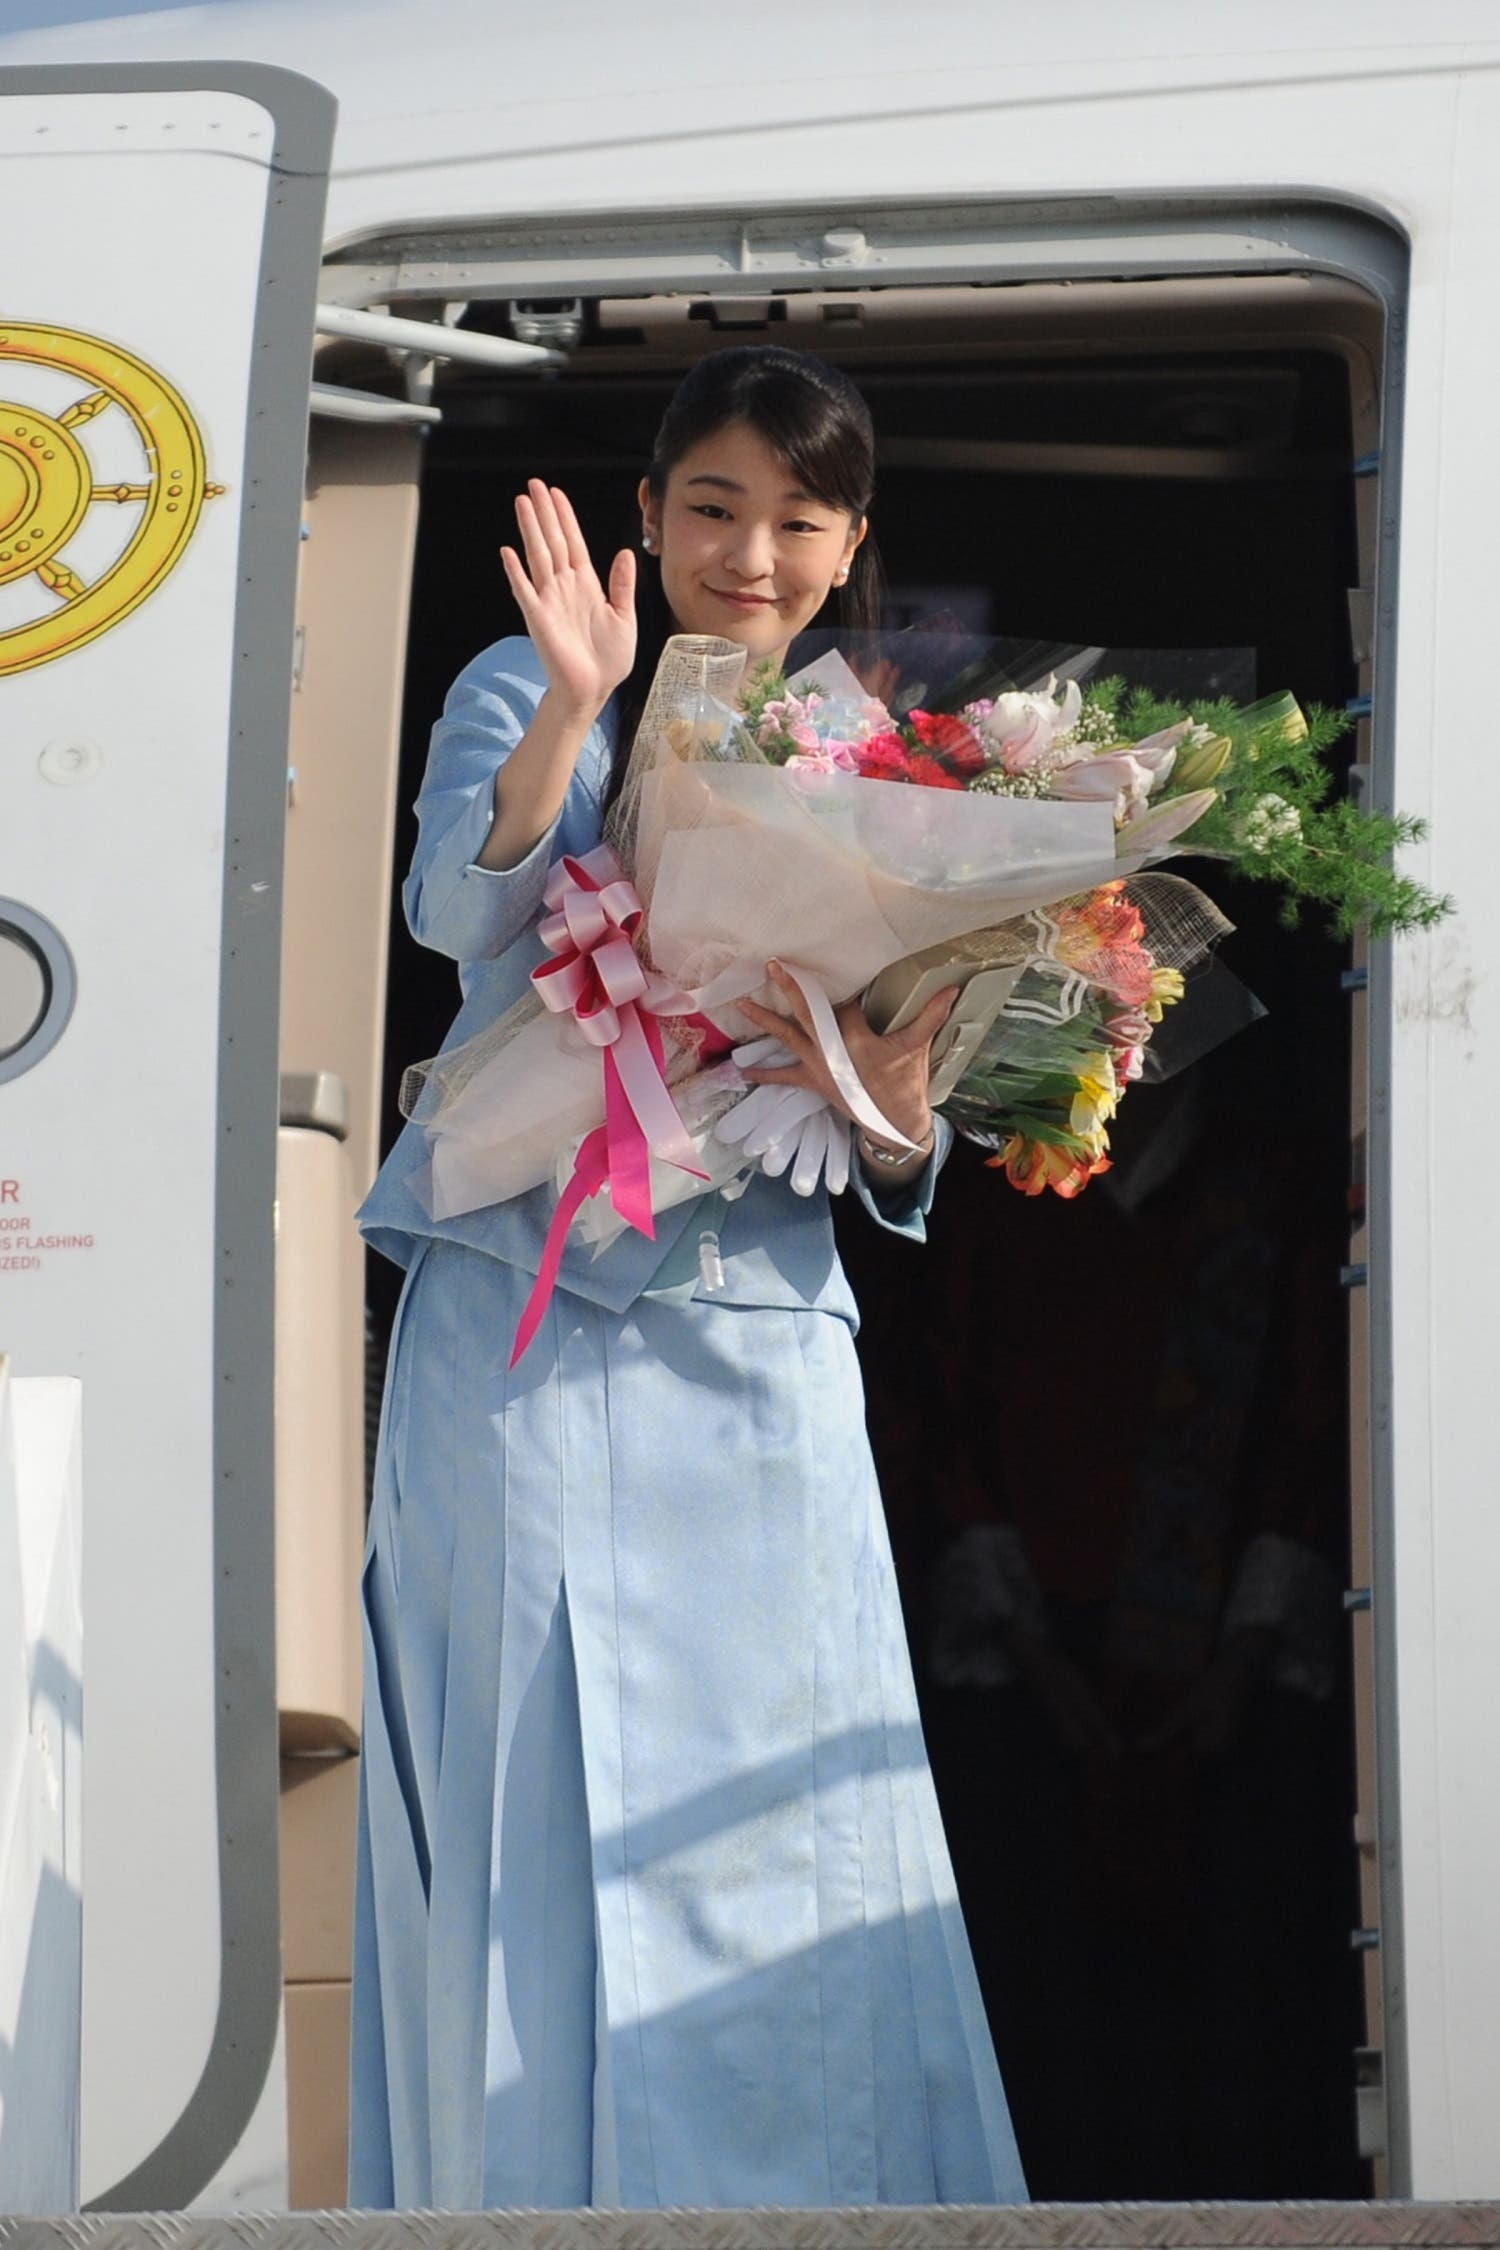 Princess Mako waves prior to her departure from Paro Airport in Bhutan on June 7, 2017. (AFP)